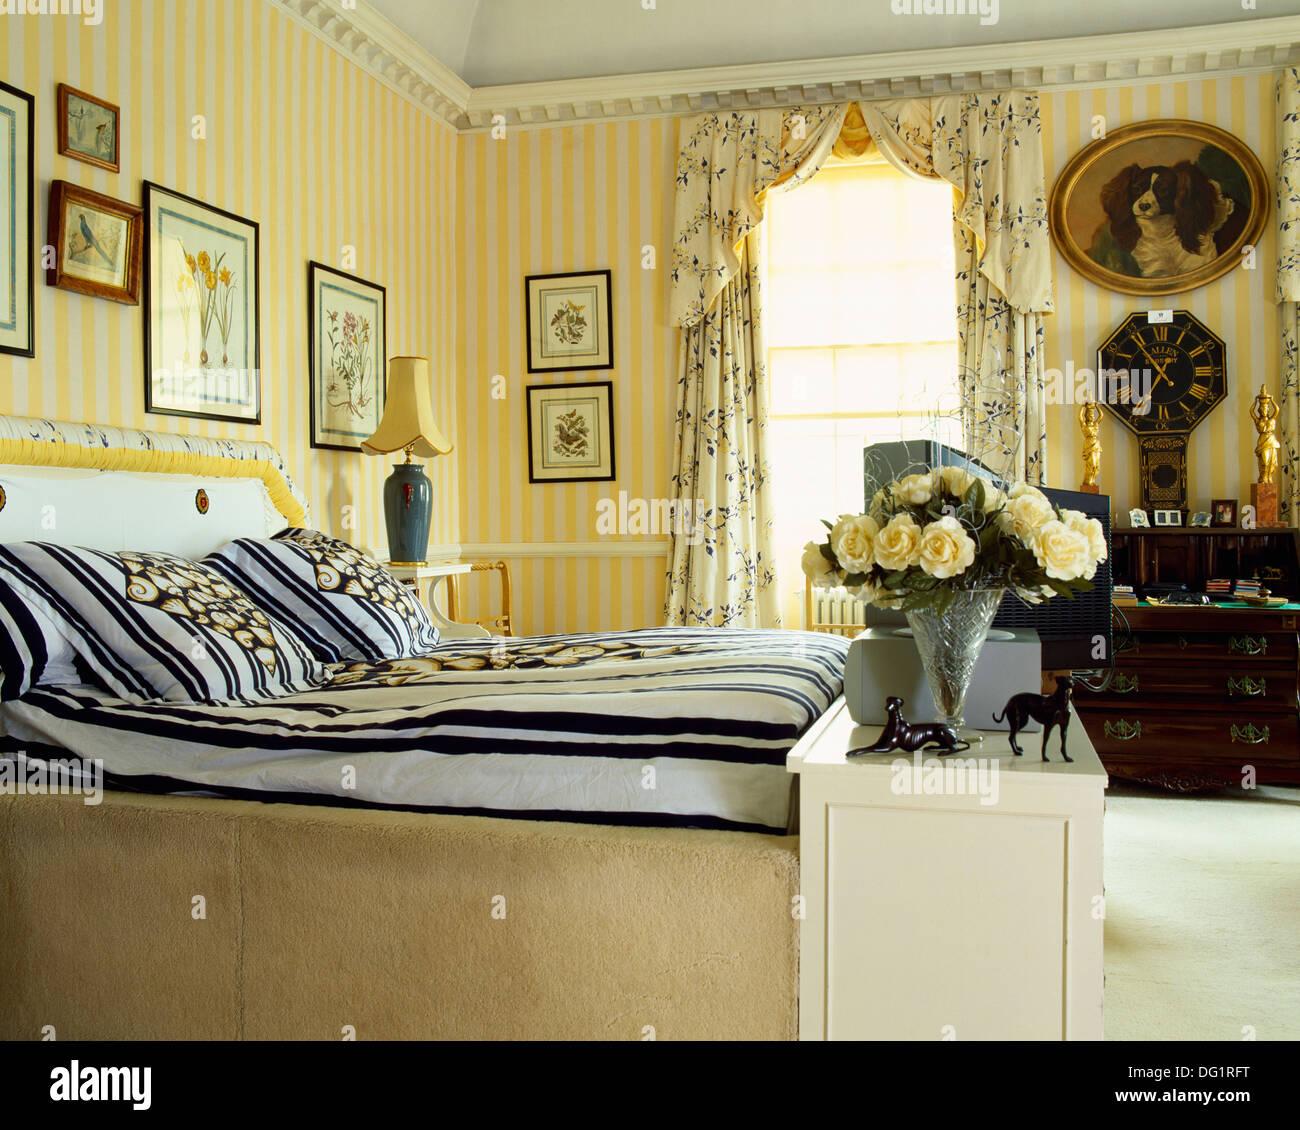 Stock Photo   Yellow Striped Wallpaper And Floral Curtains In Townhouse  Bedroom With Black+white Striped Duvet On Fitted Bed